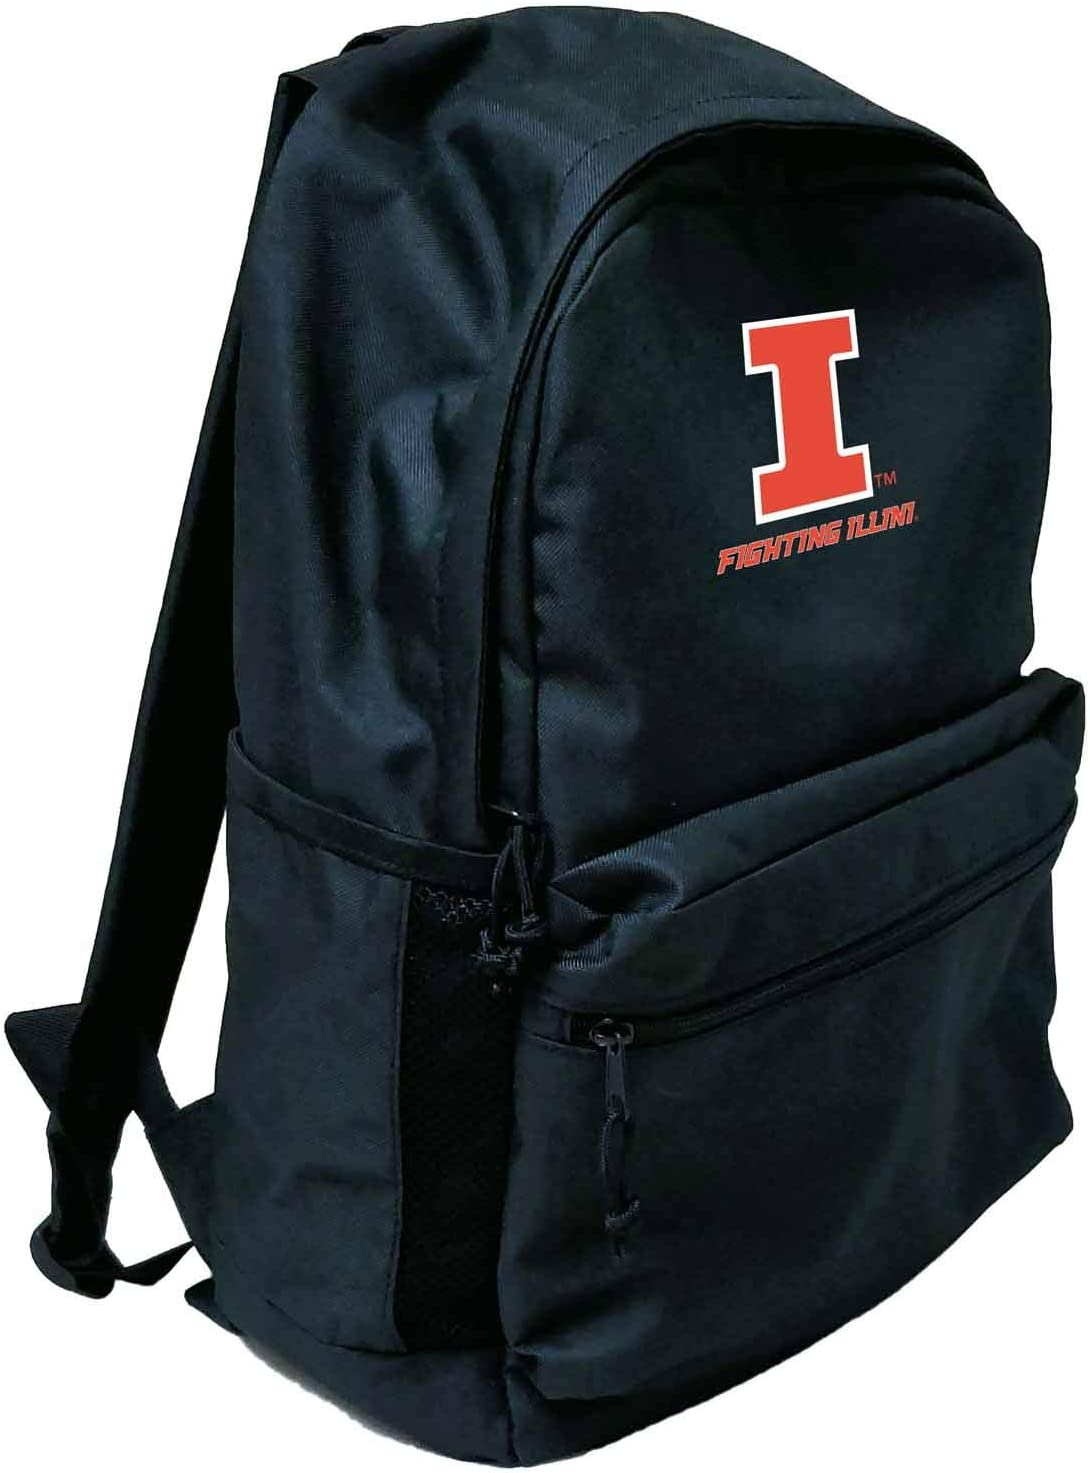 Campus Colors Honor Roll Backpack Friendly Discount mail New York Mall order Tech